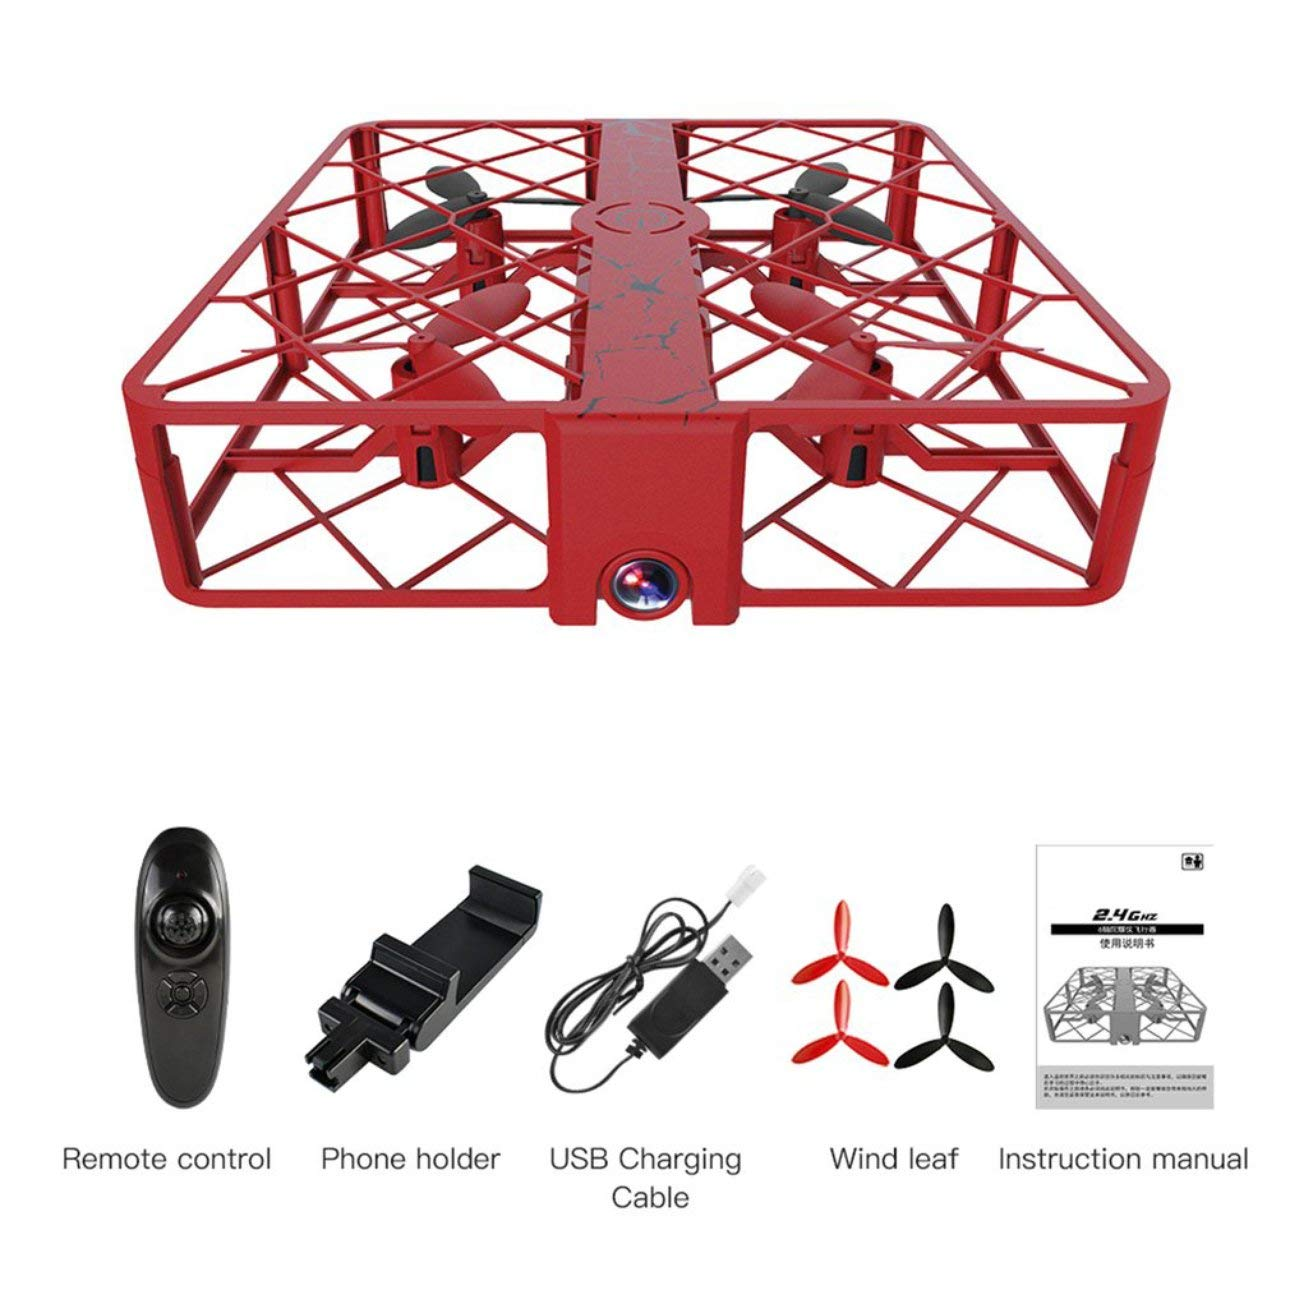 Liobaba SG500 Mini RC Drone WiFi Remote Quadcopter 720P HD Camera 4CH Altitude Hold Headless Mode Helicopter Children